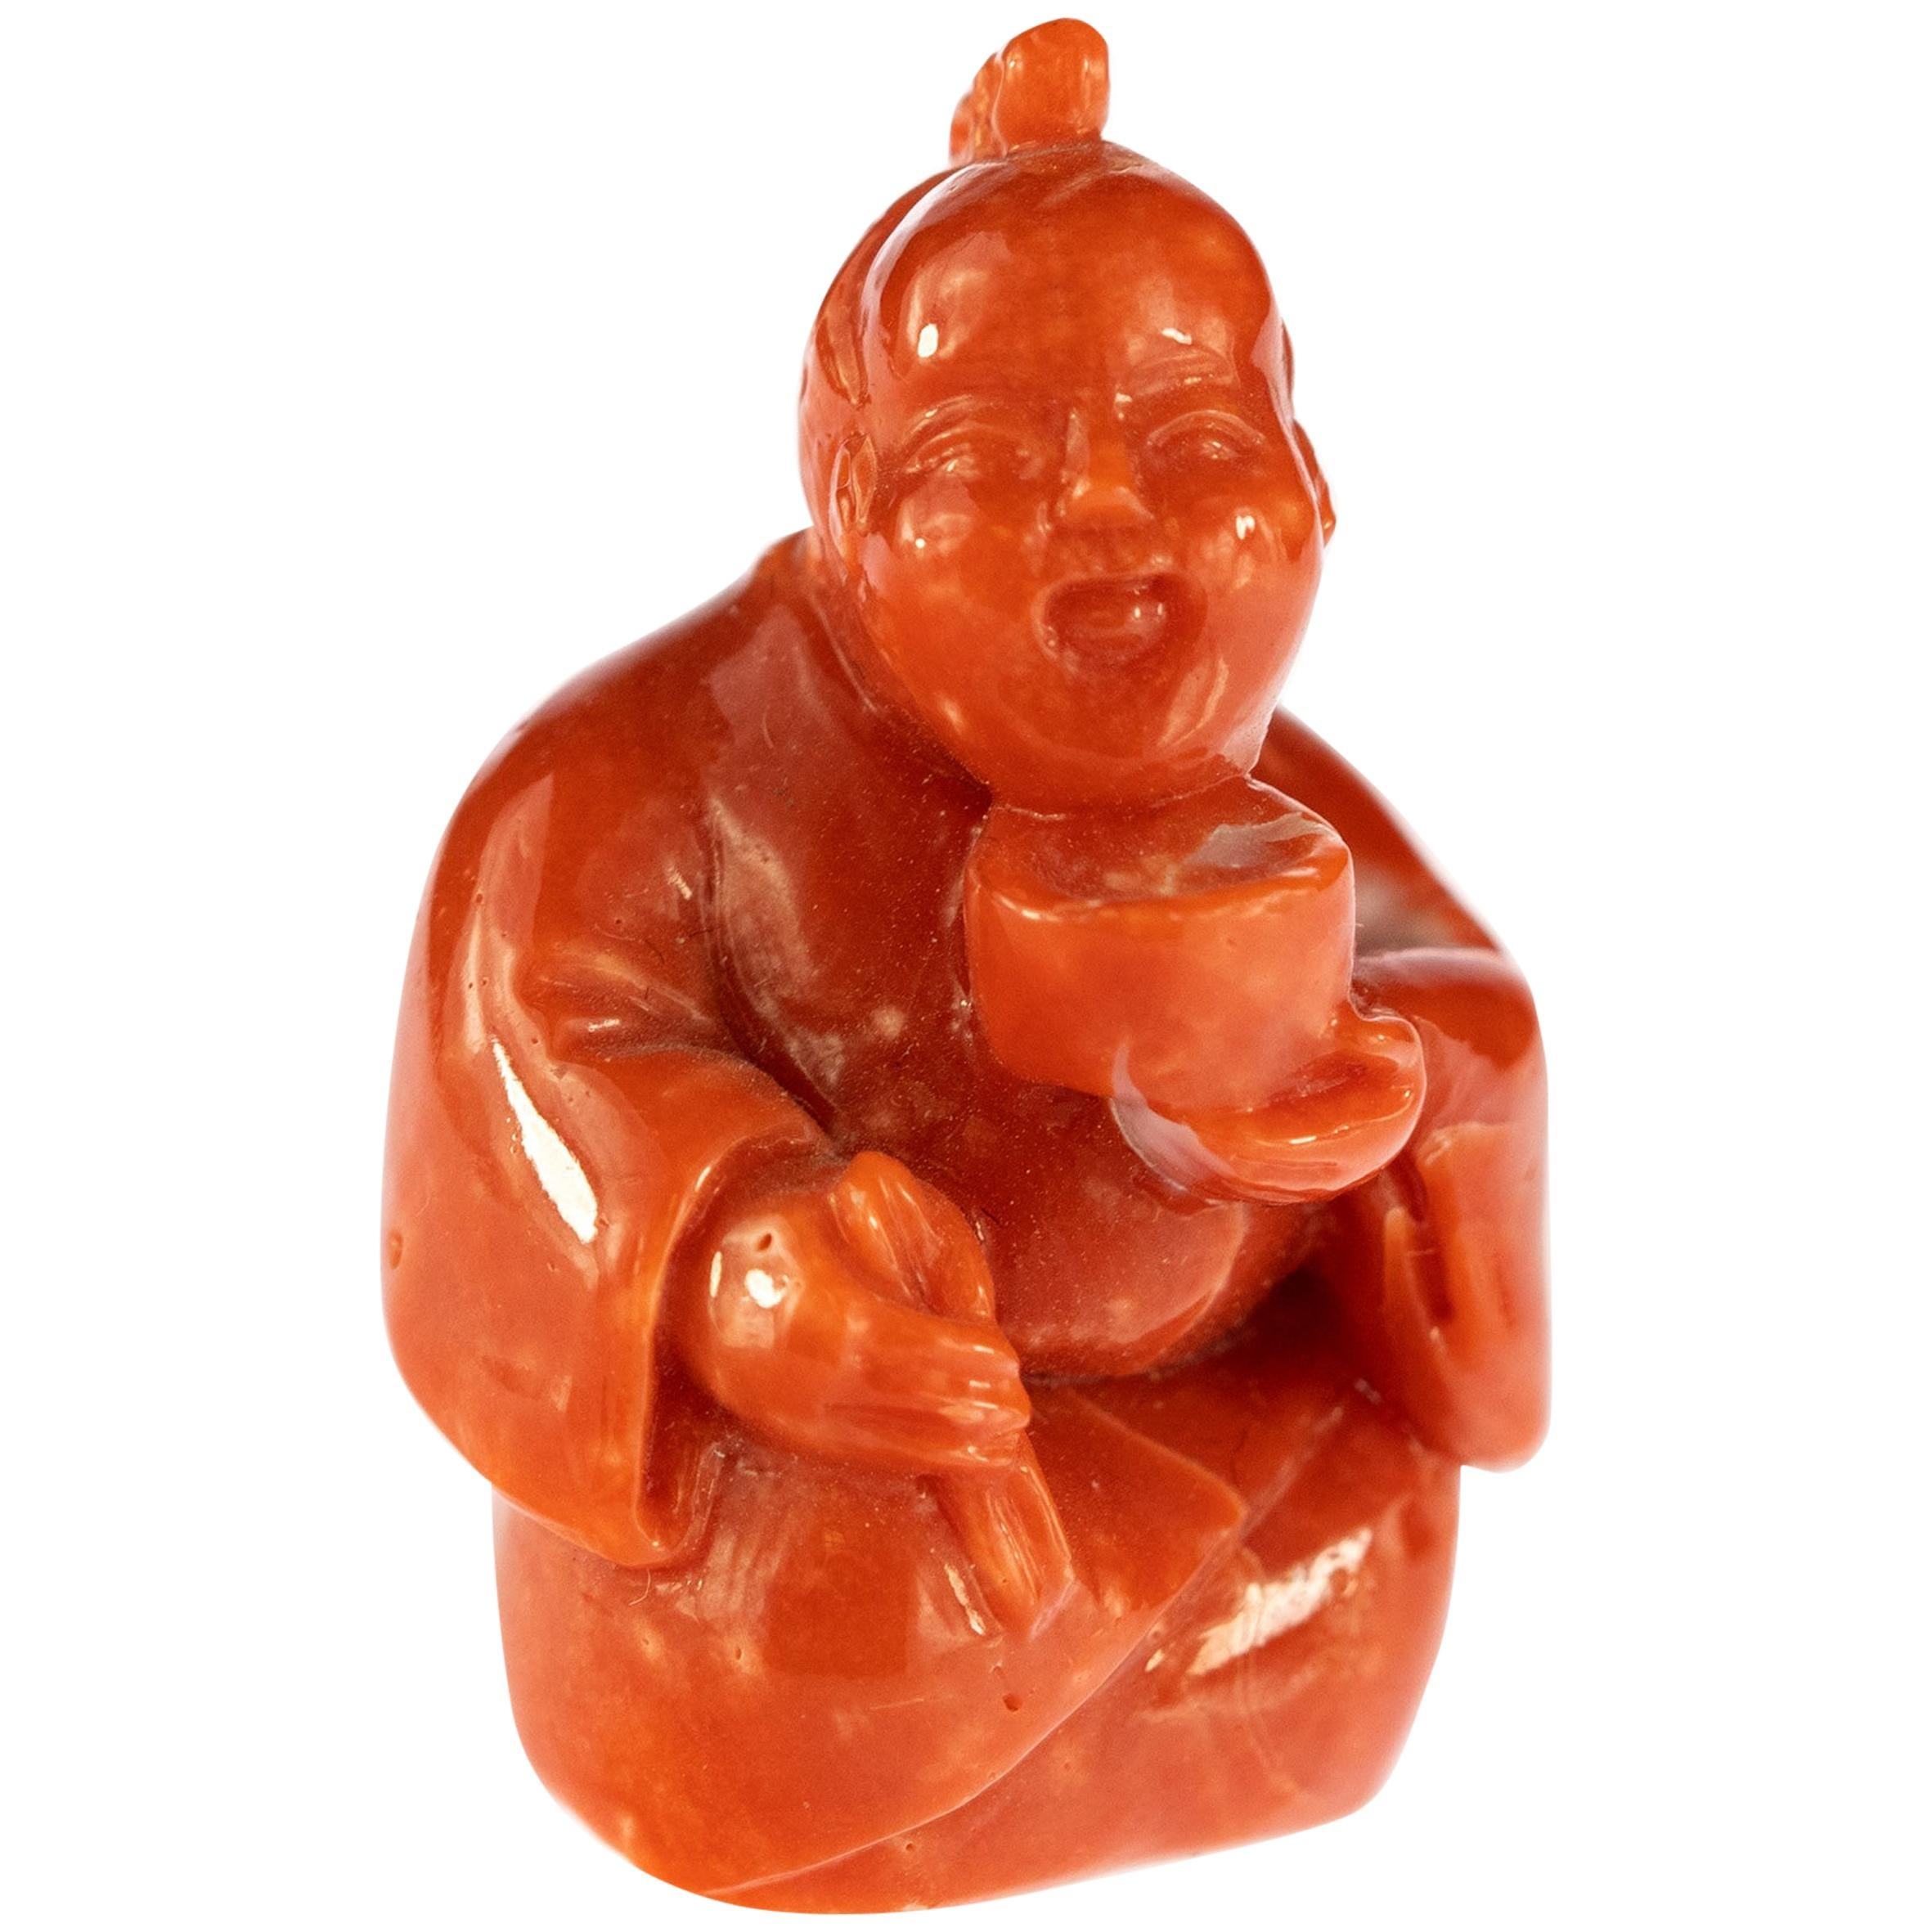 Red Coral Chinese Wise Man Hand Carved Statue Asian Art Meditation Sculpture